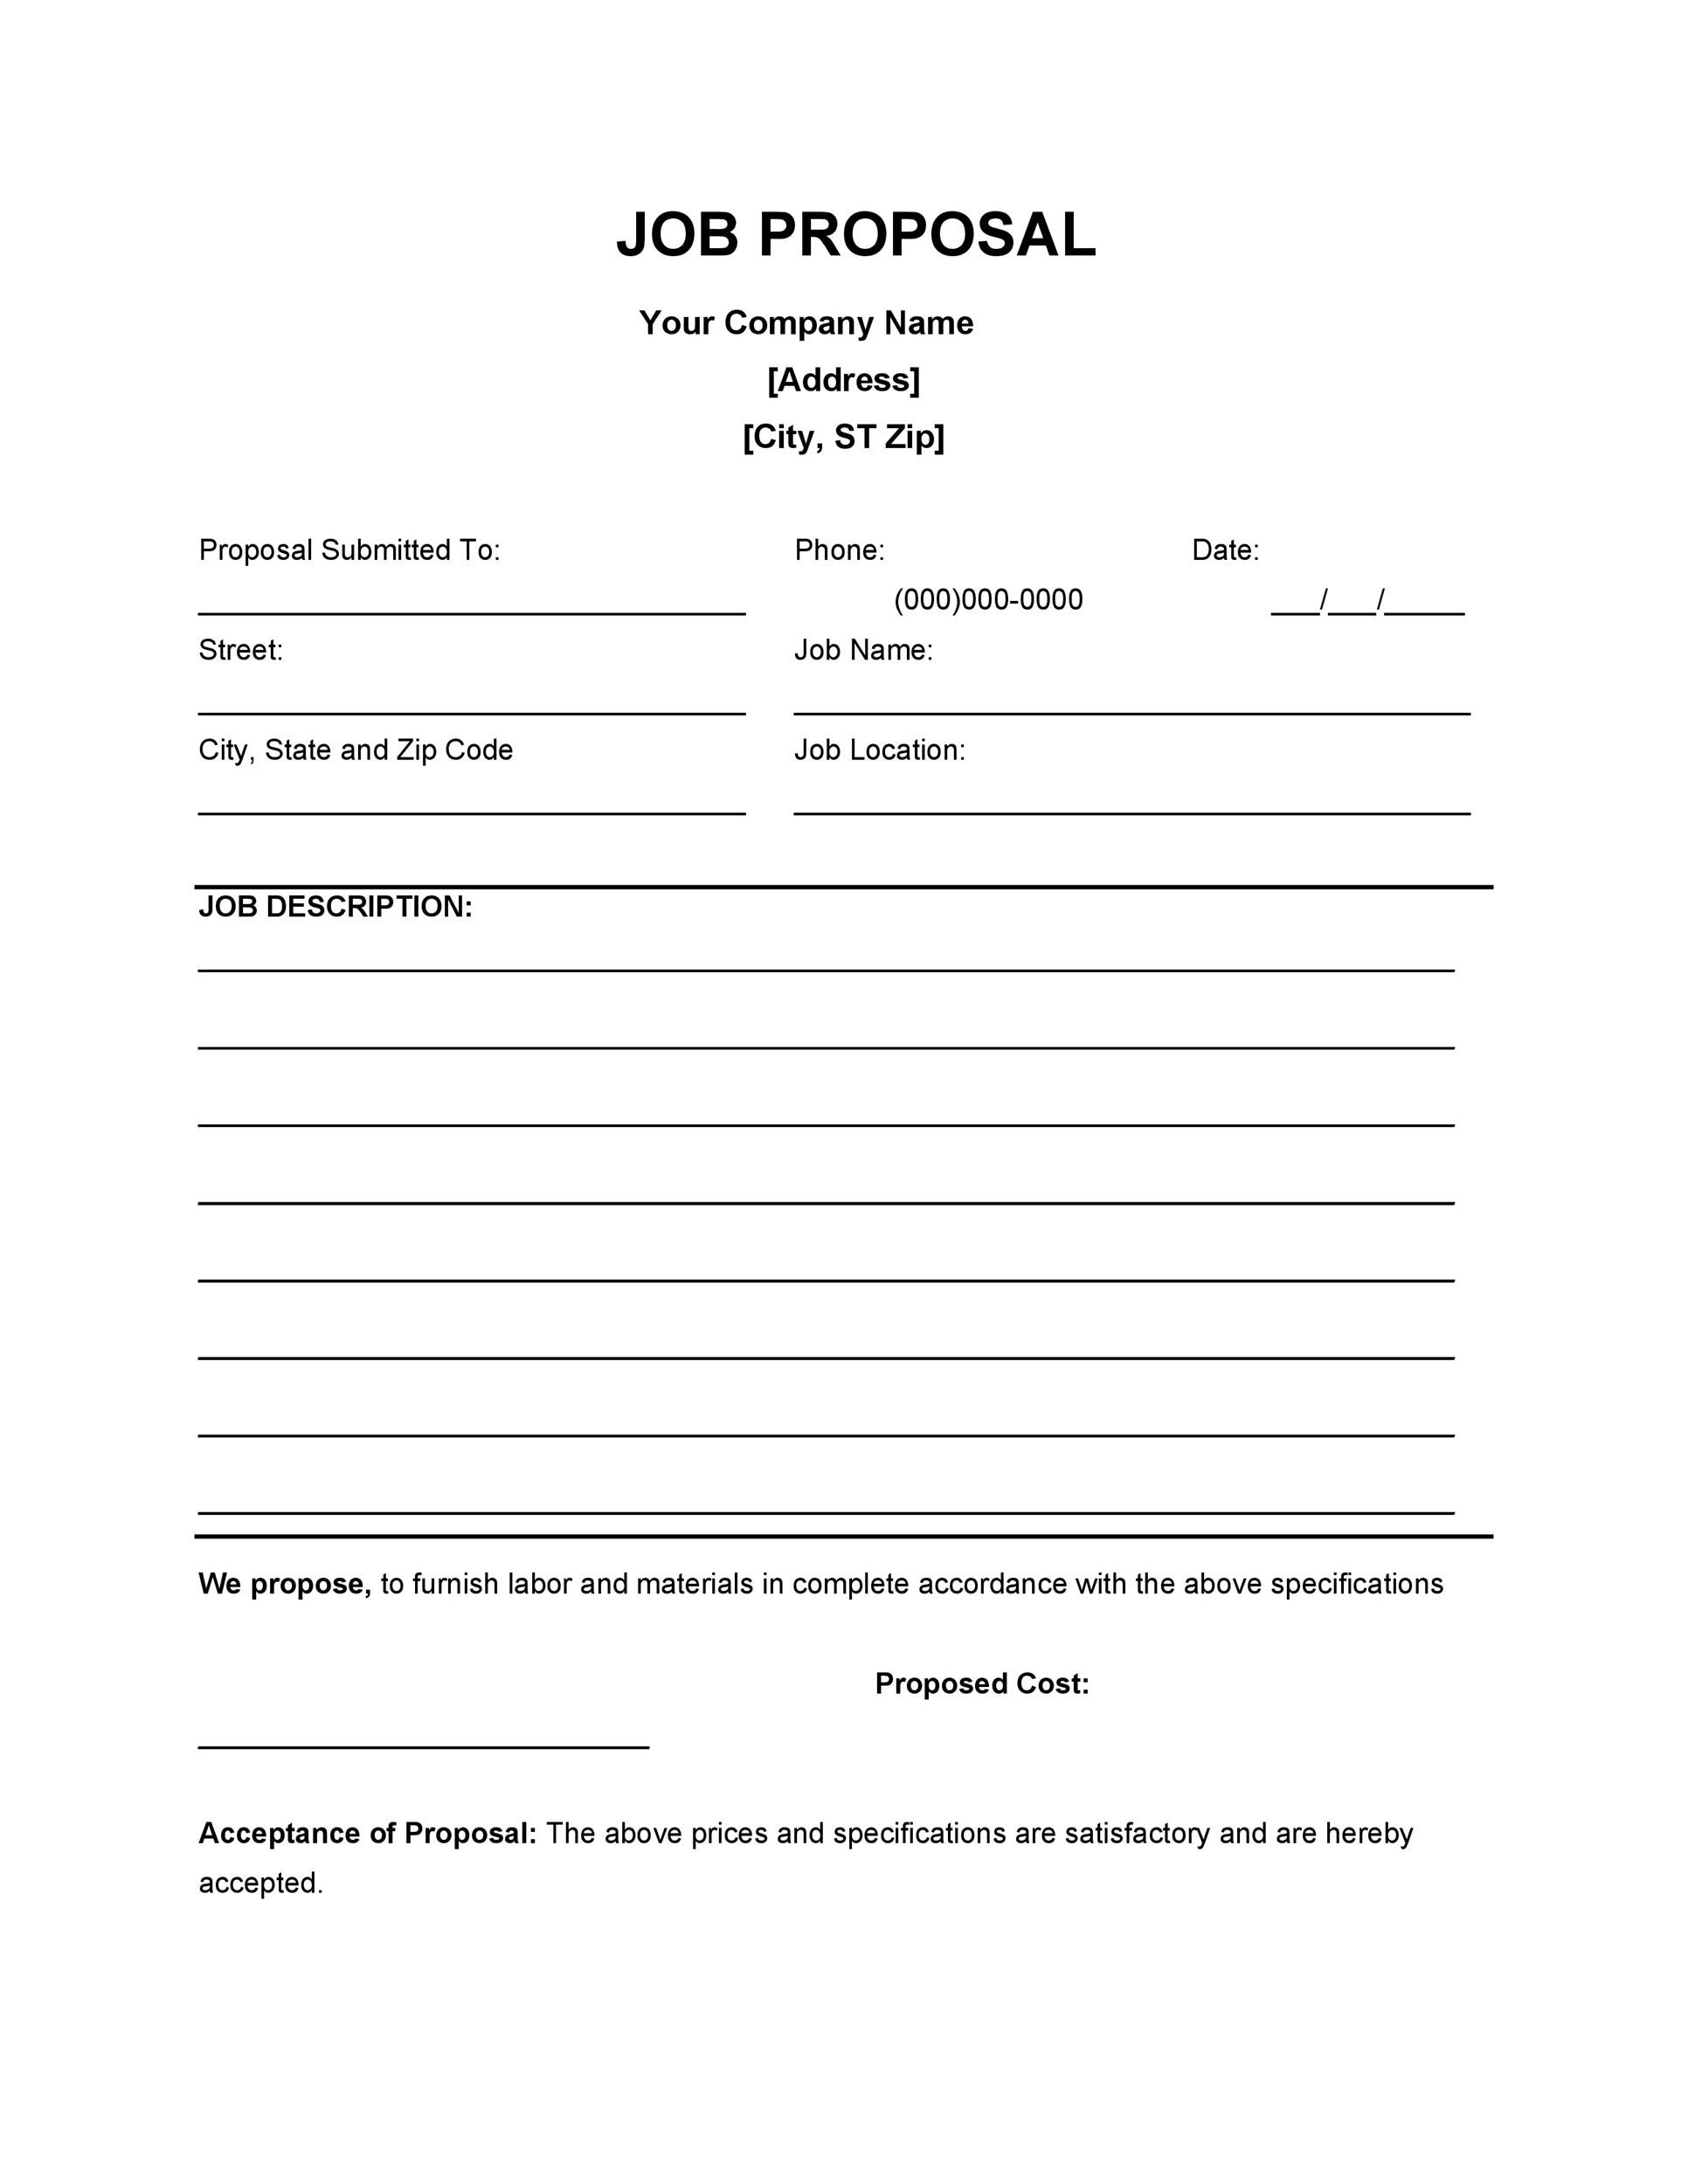 Free Job Proposal Template 02